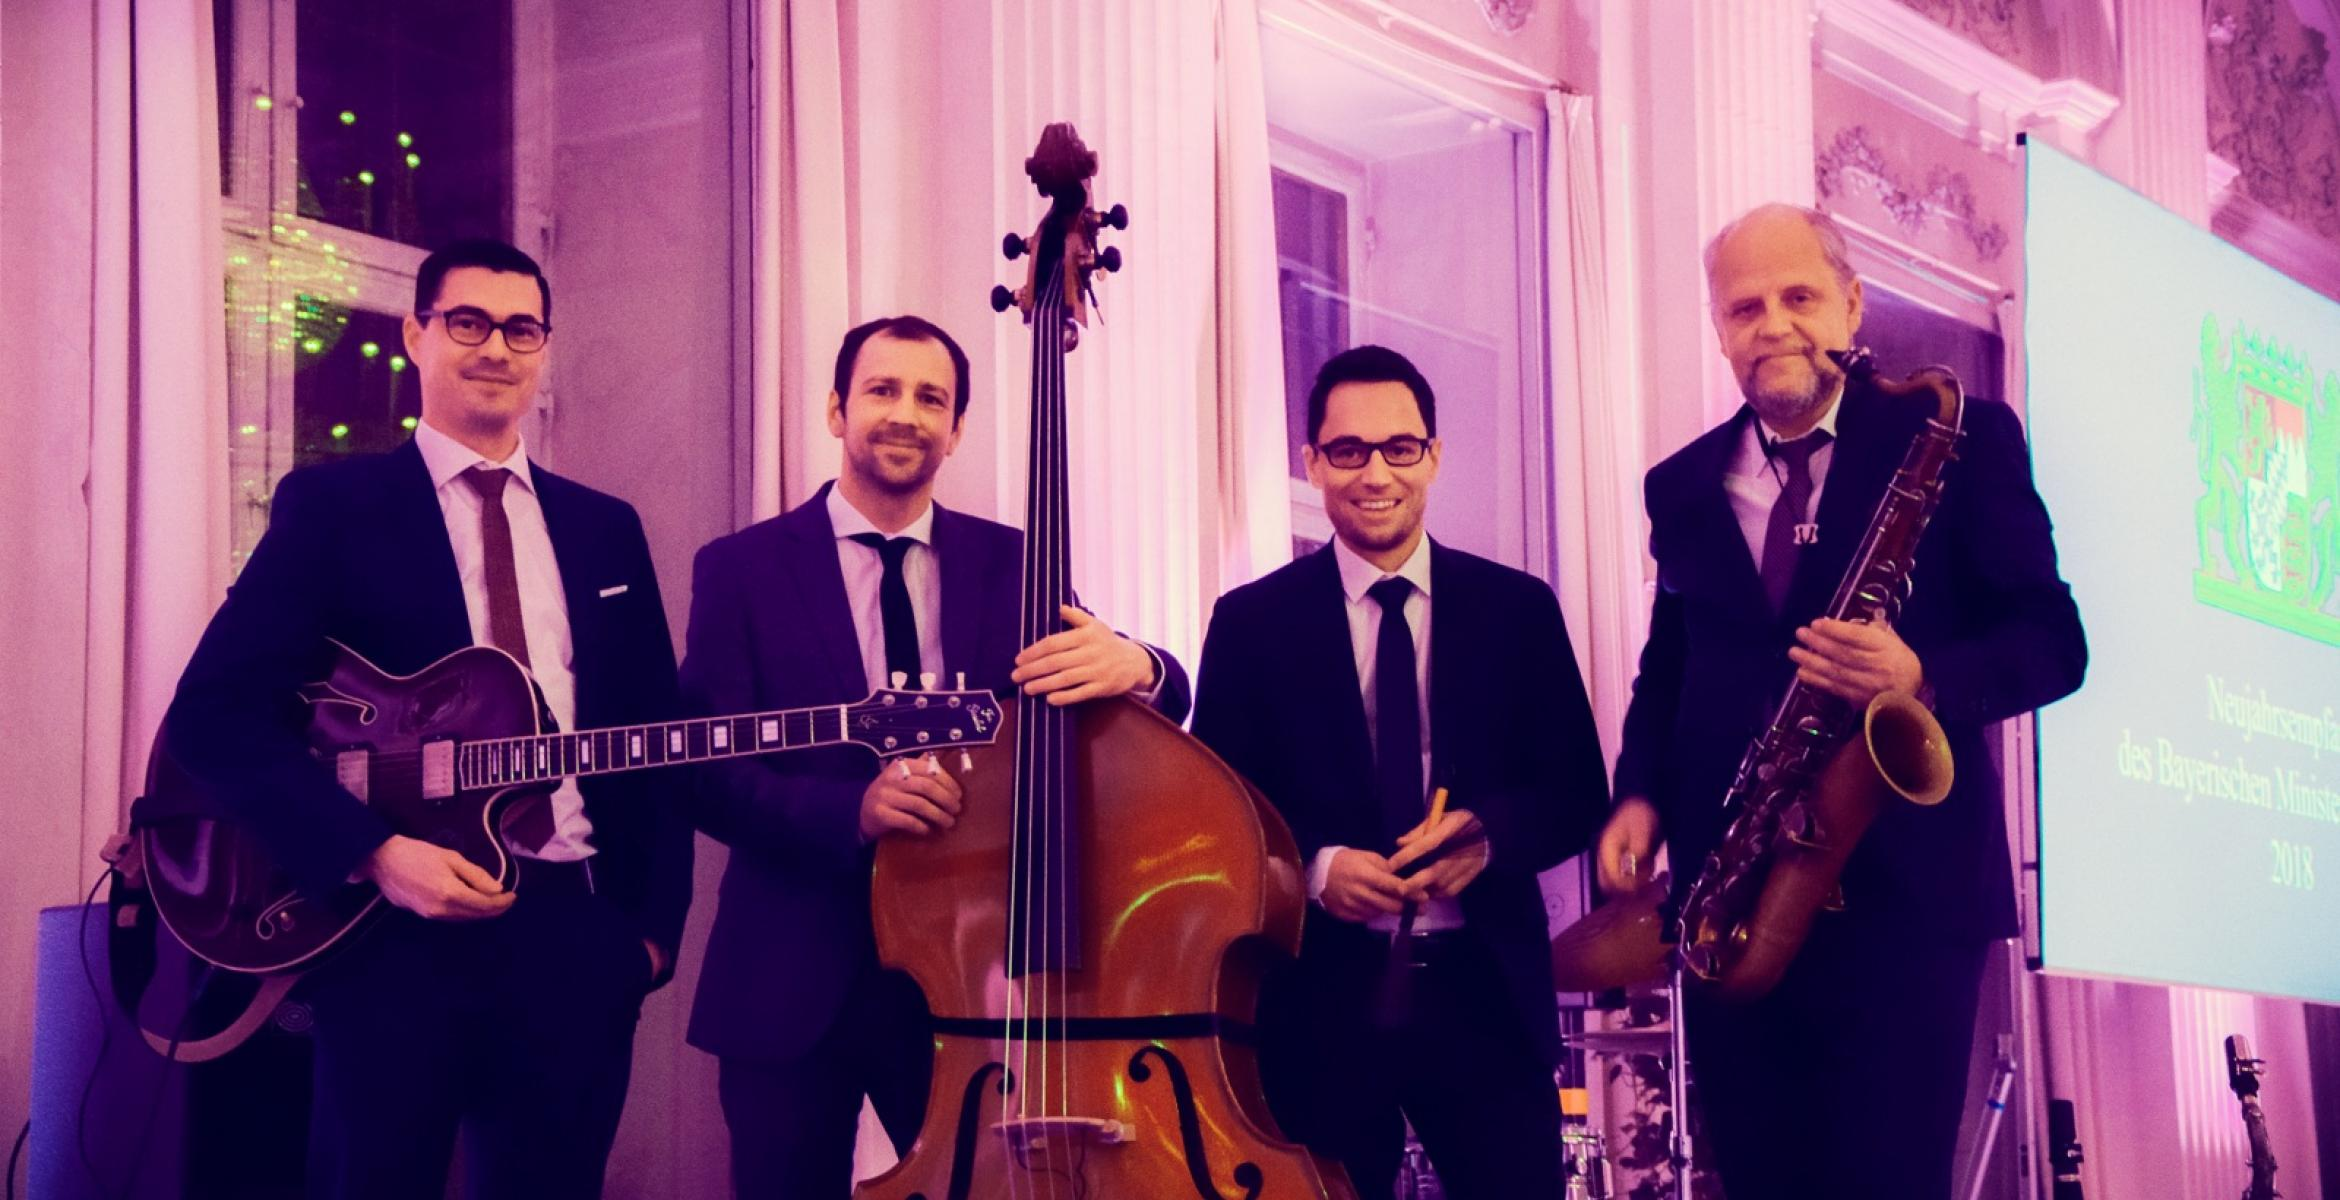 Jazz-Quartett, Live, Residenz München, Incredible Jazz Combination